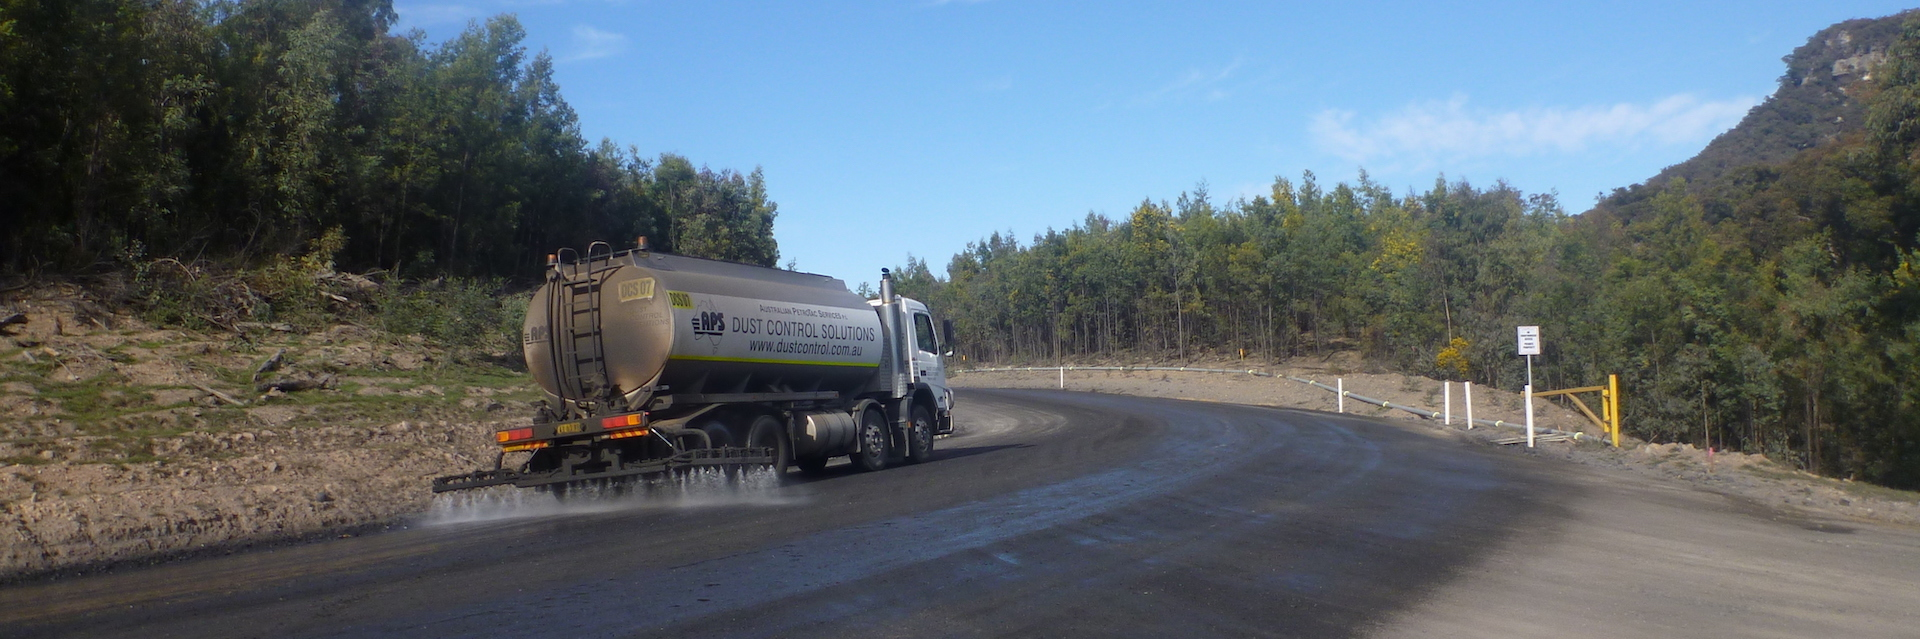 Dust Control Services Truck Watering